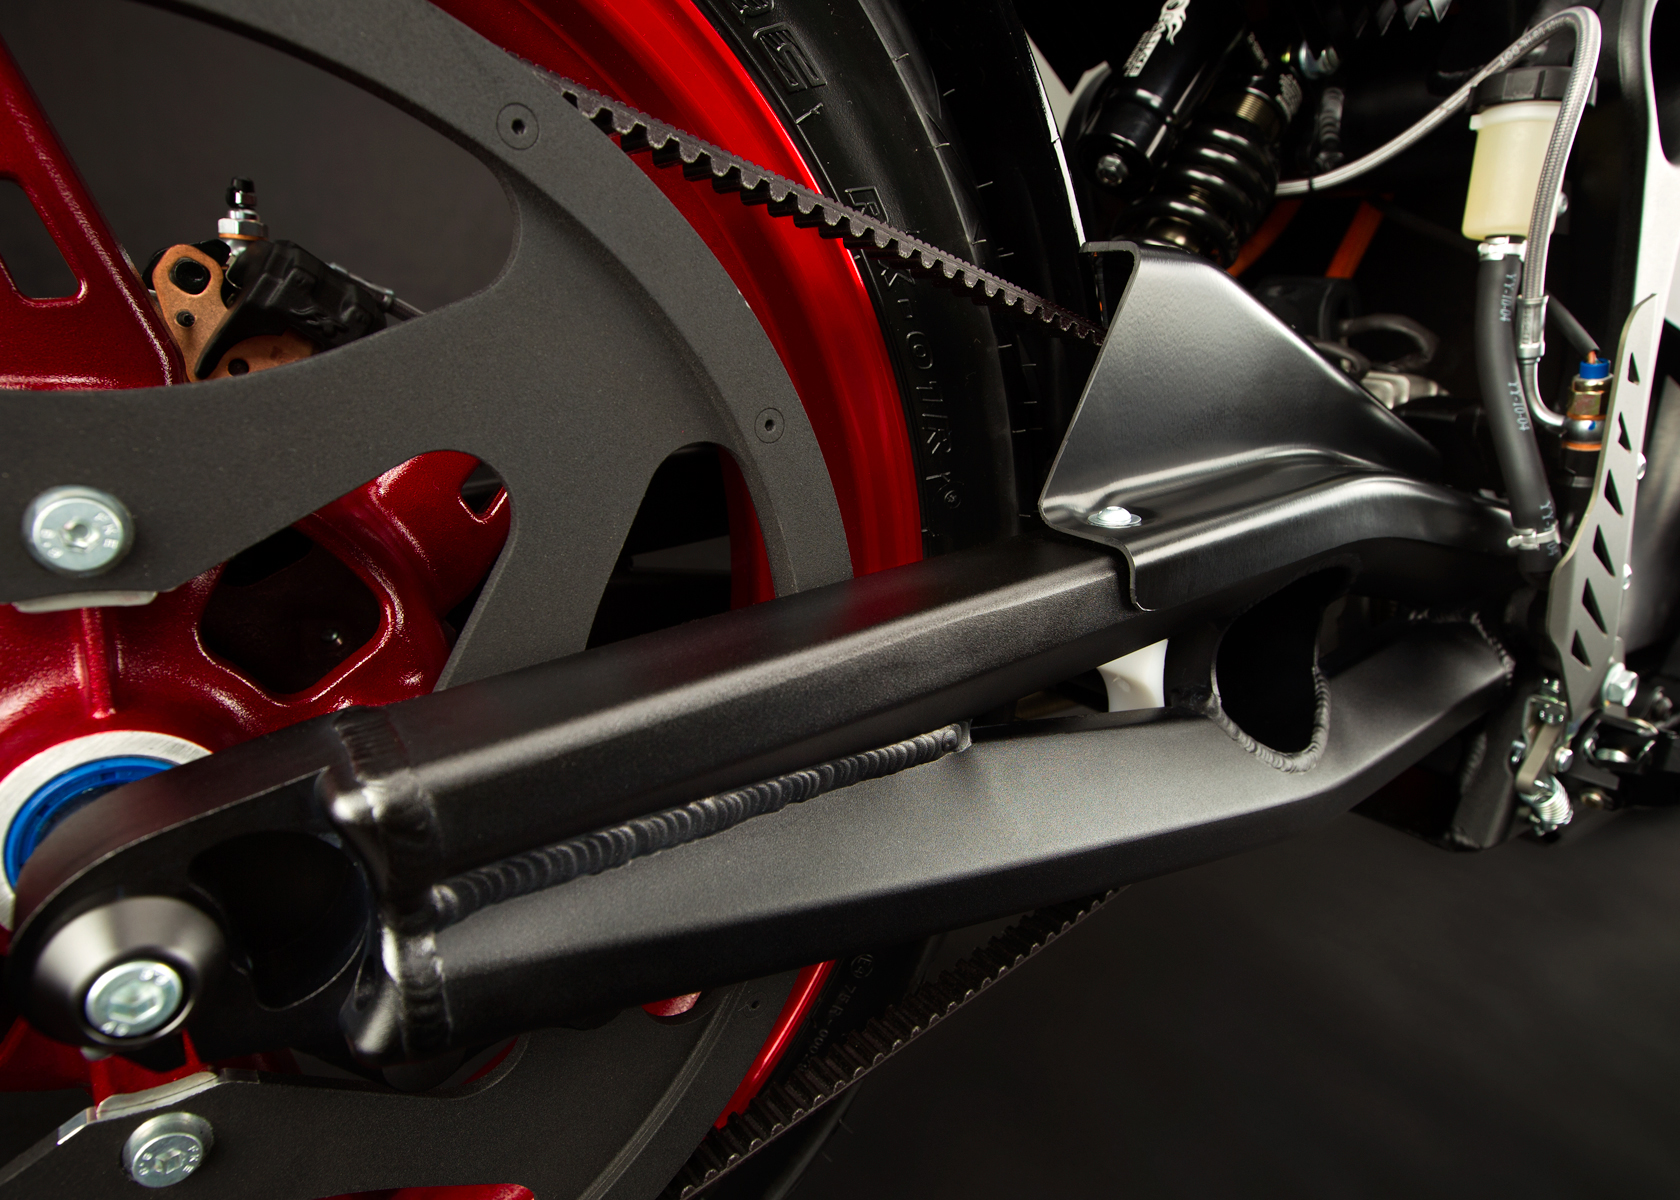 2012 Zero S Electric Motorcycle: Swingarm